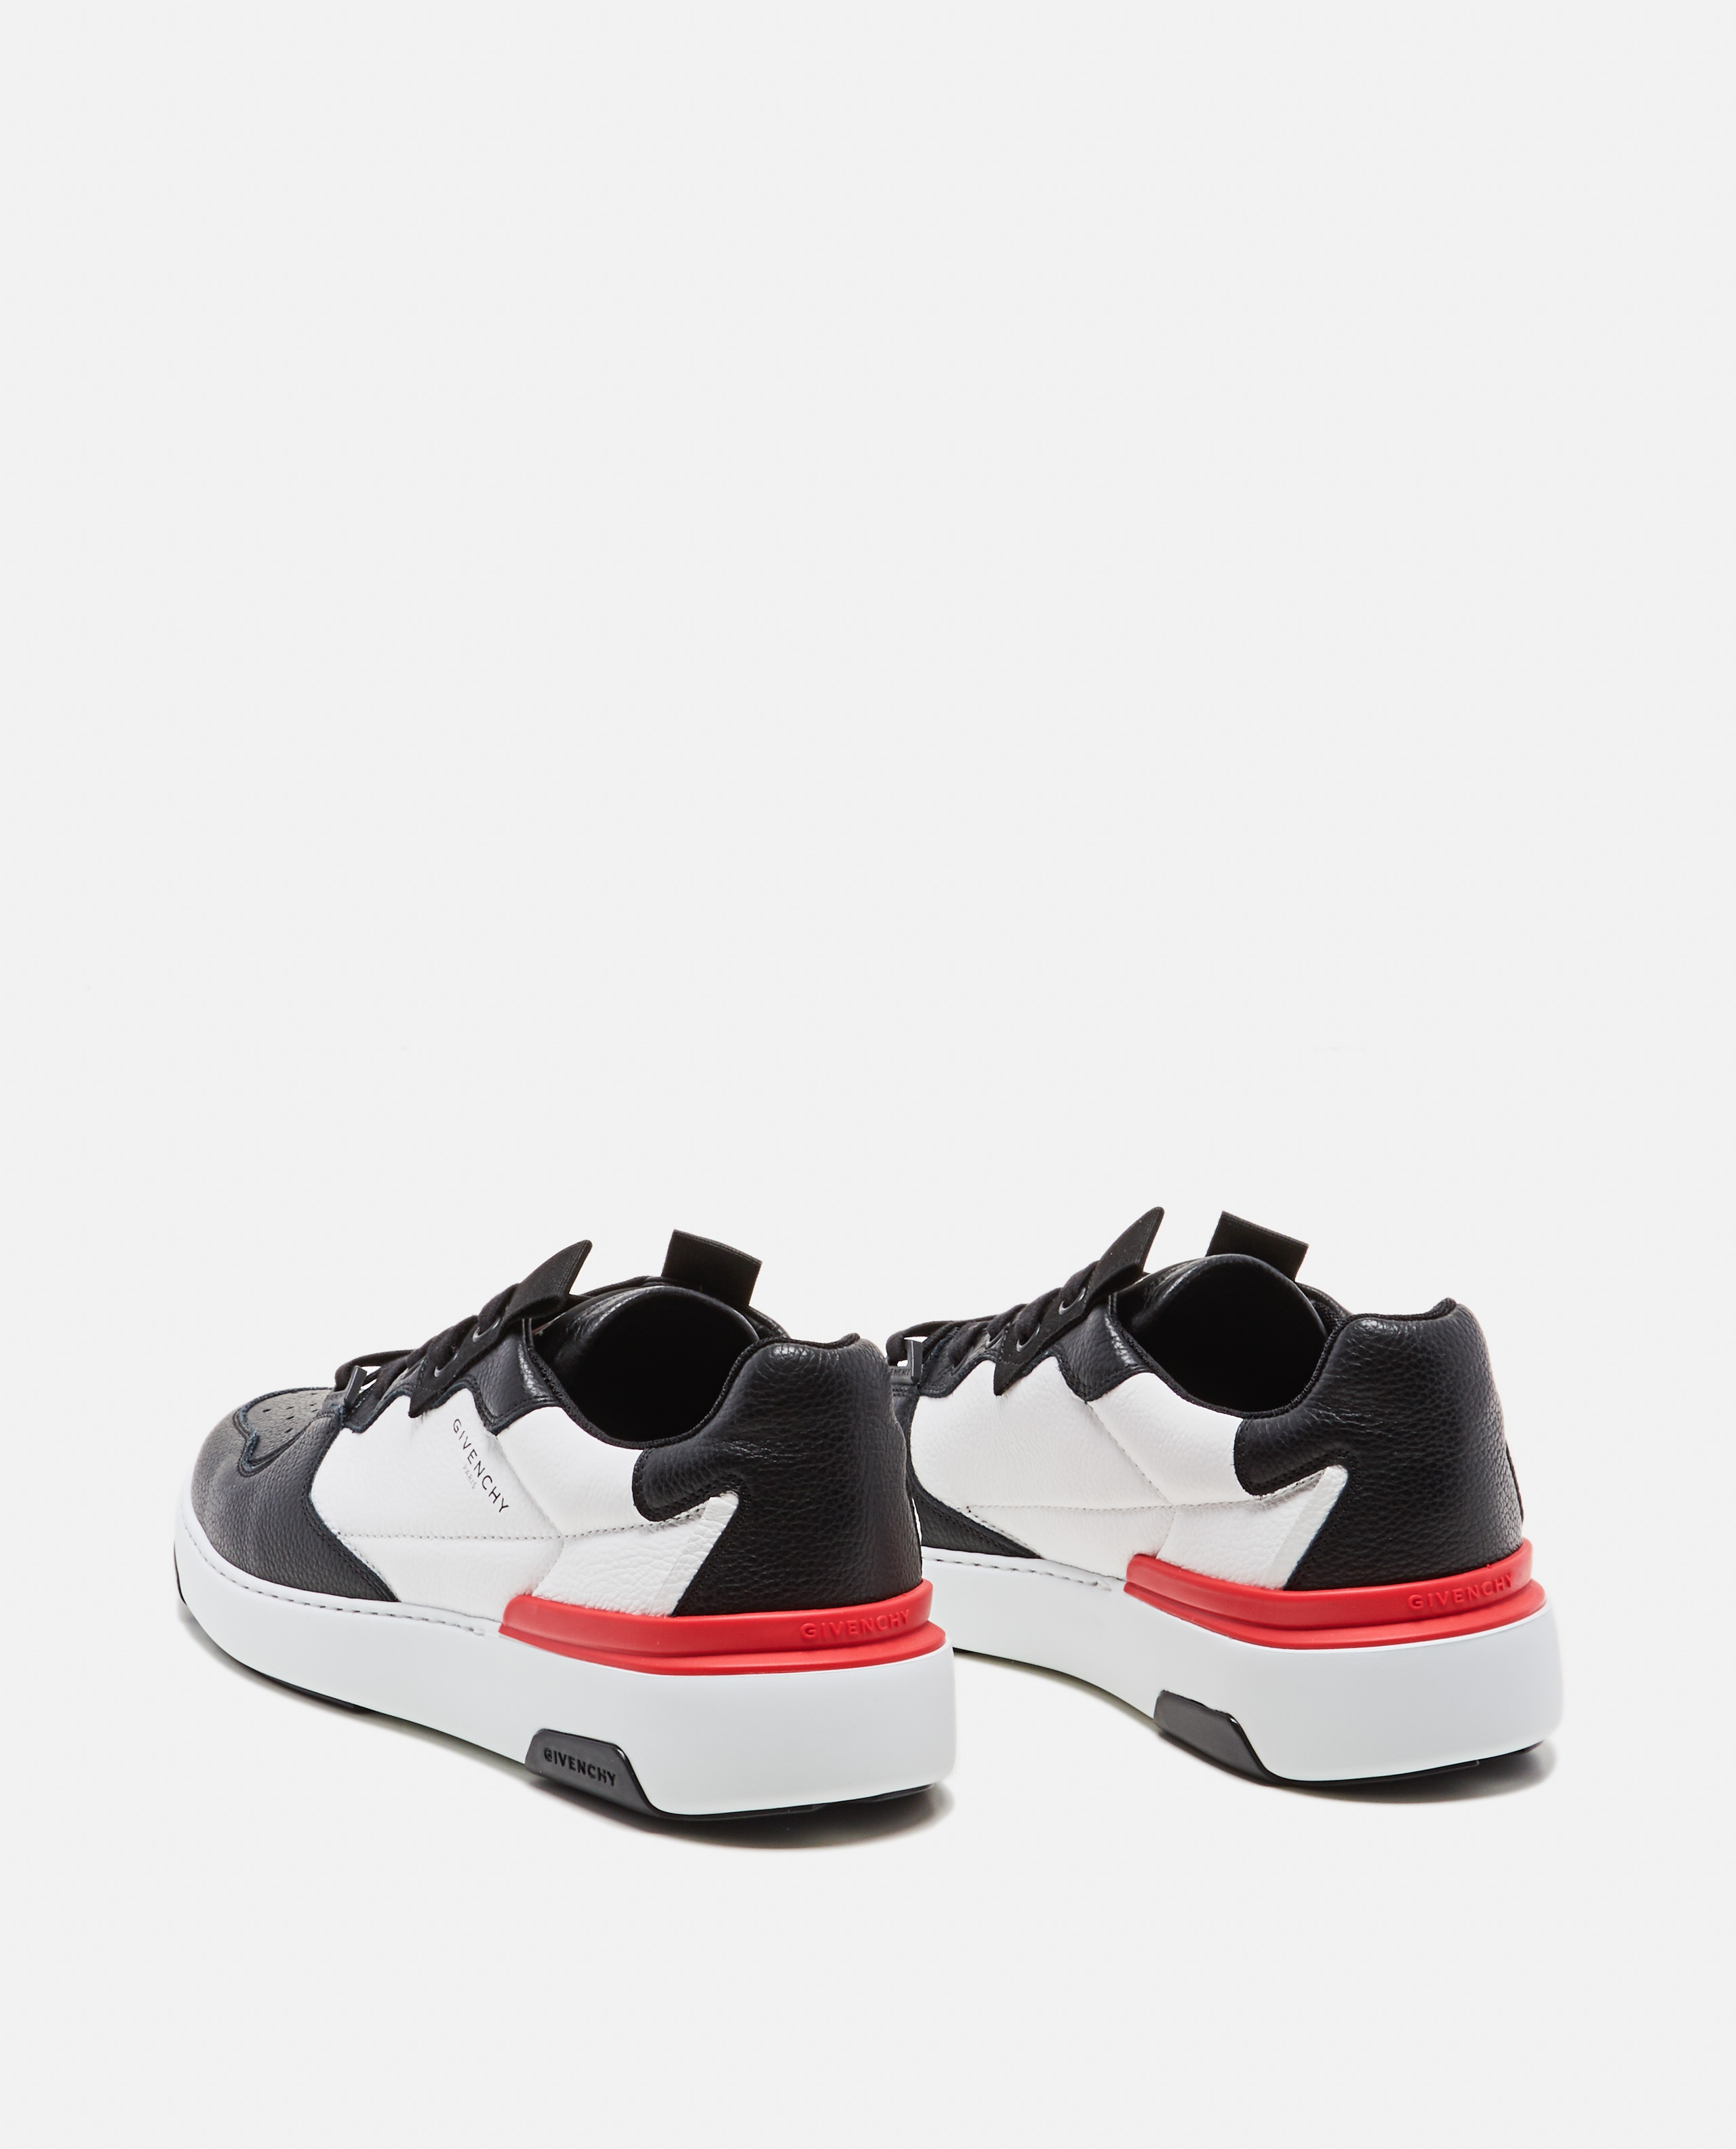 Low Wing Sneaker Men Givenchy 000226370033473 3